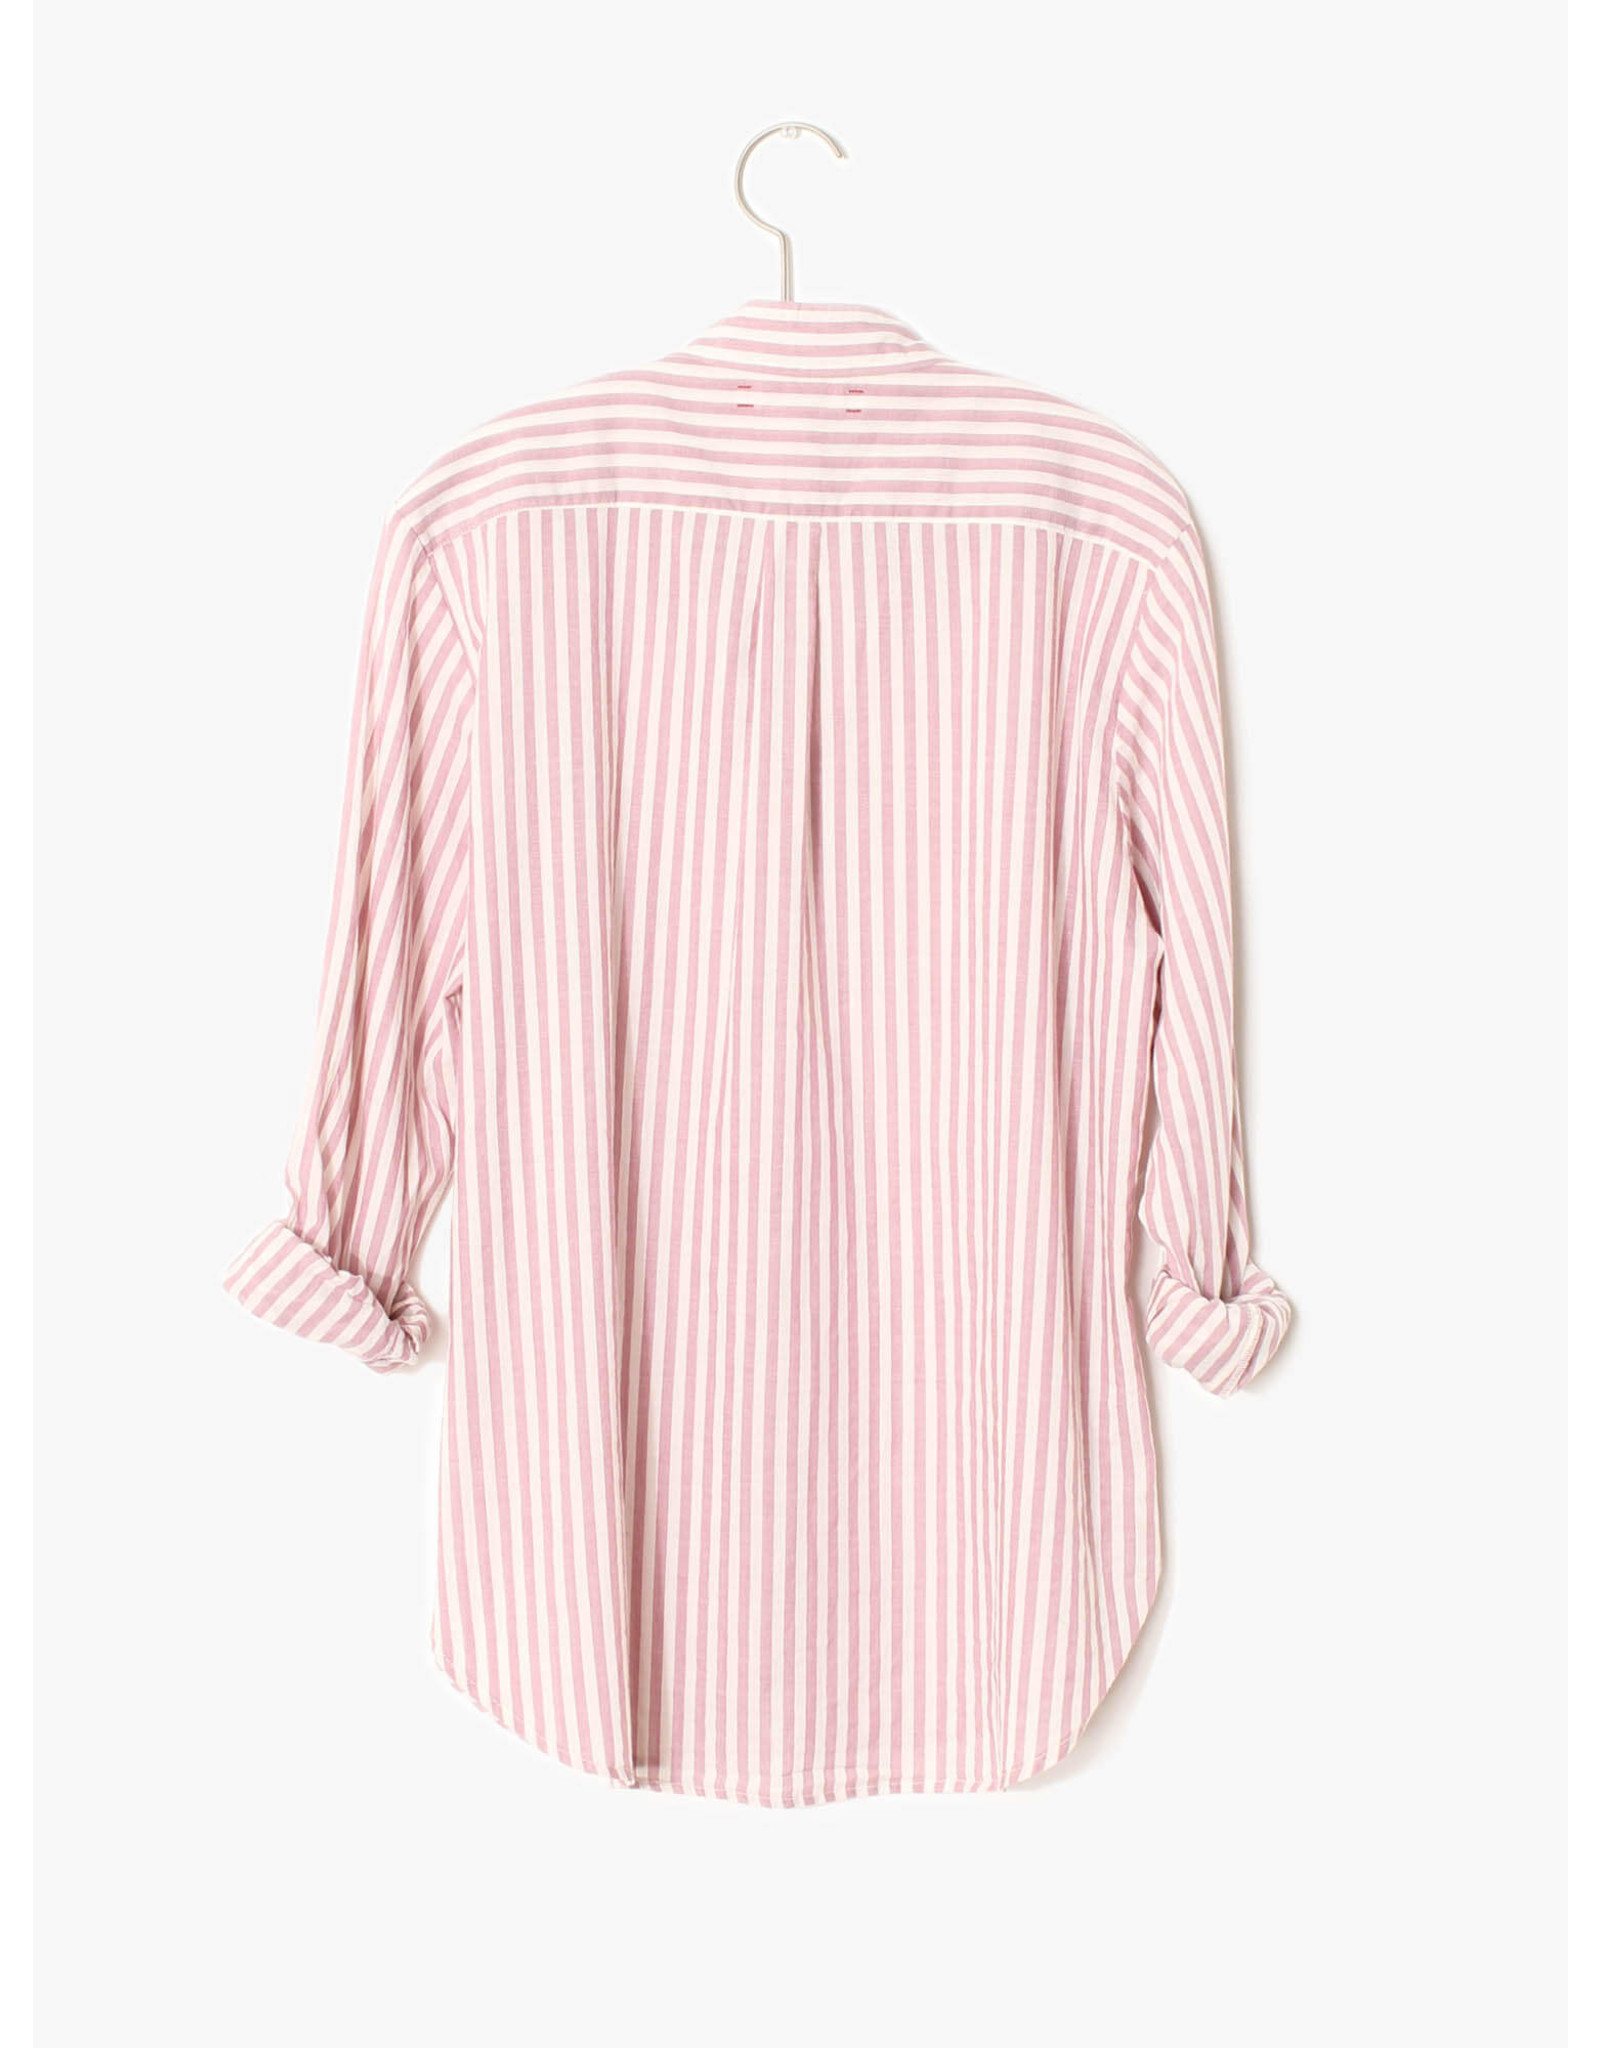 xirena beau shirt striped